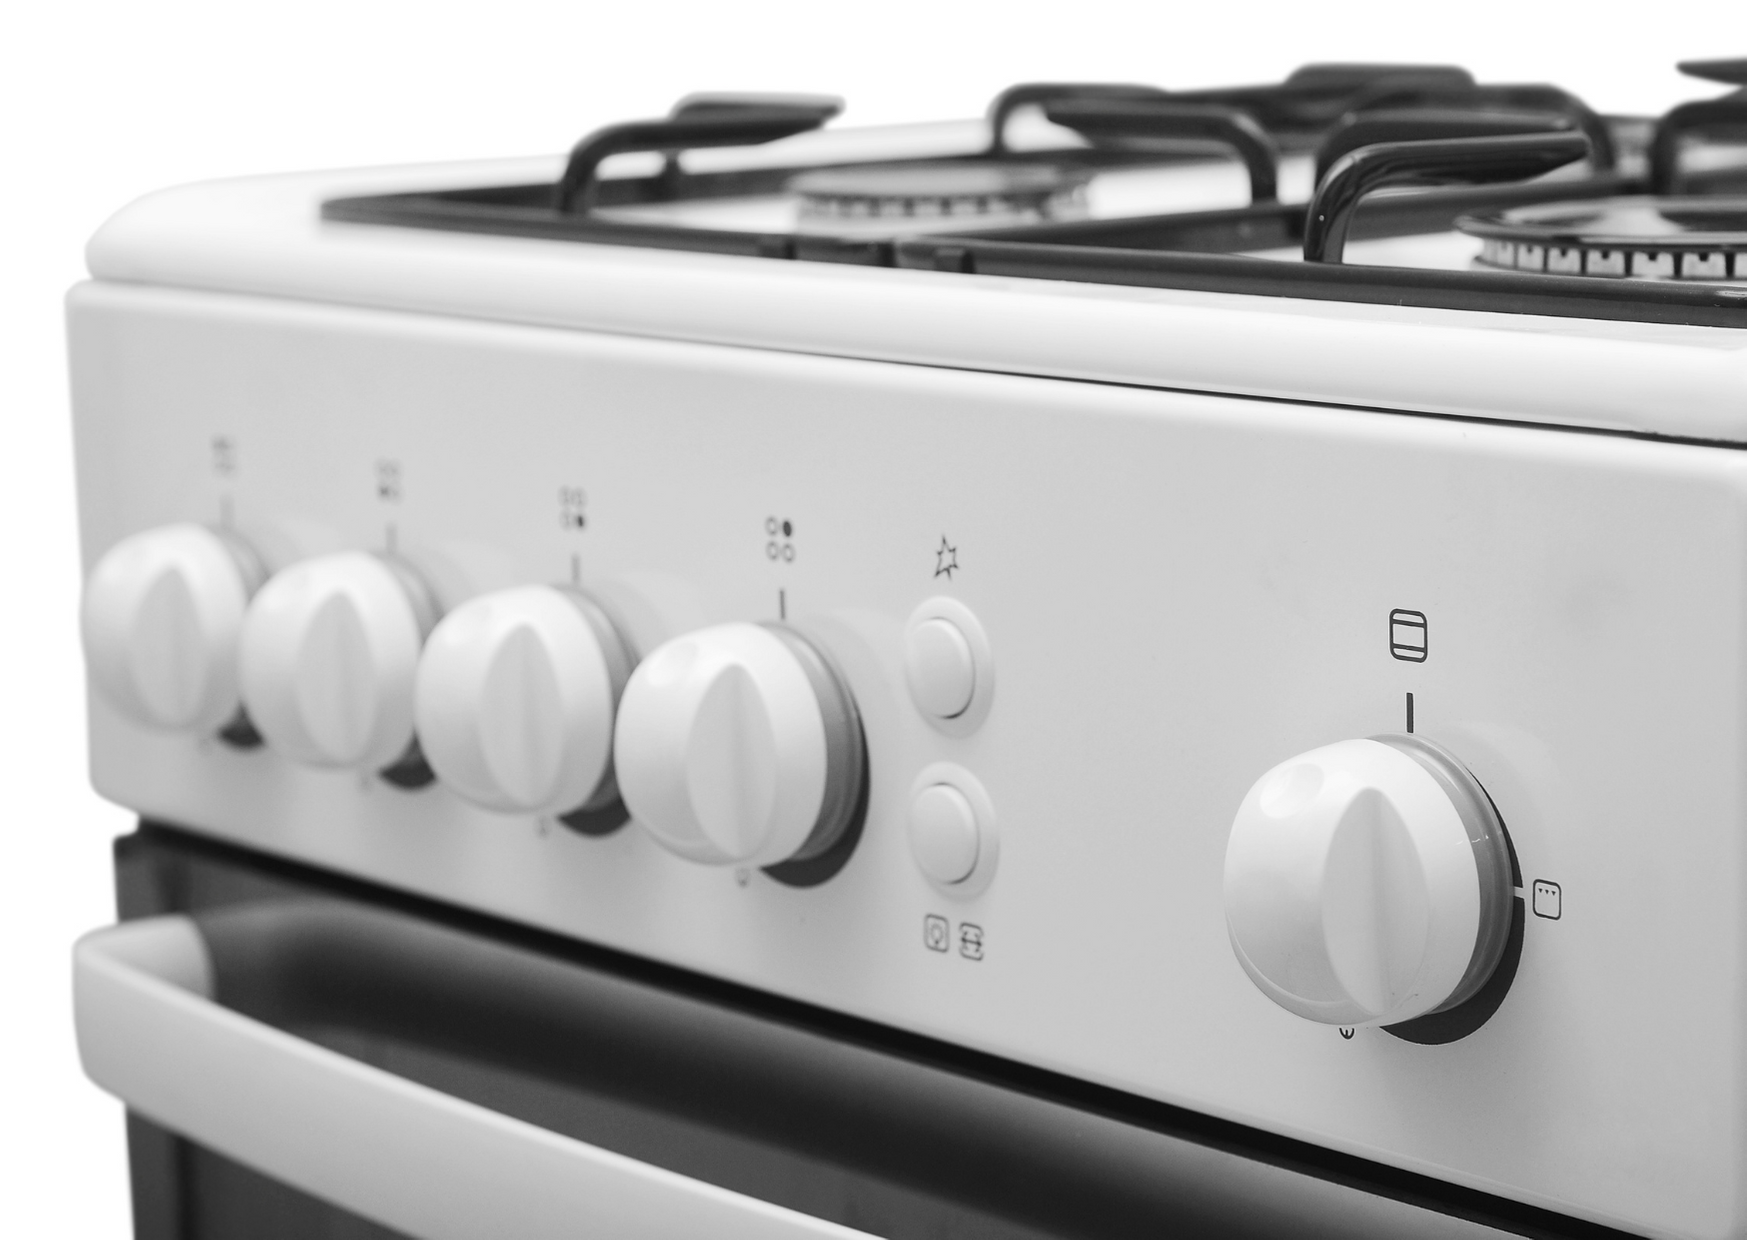 a white stove in focused view